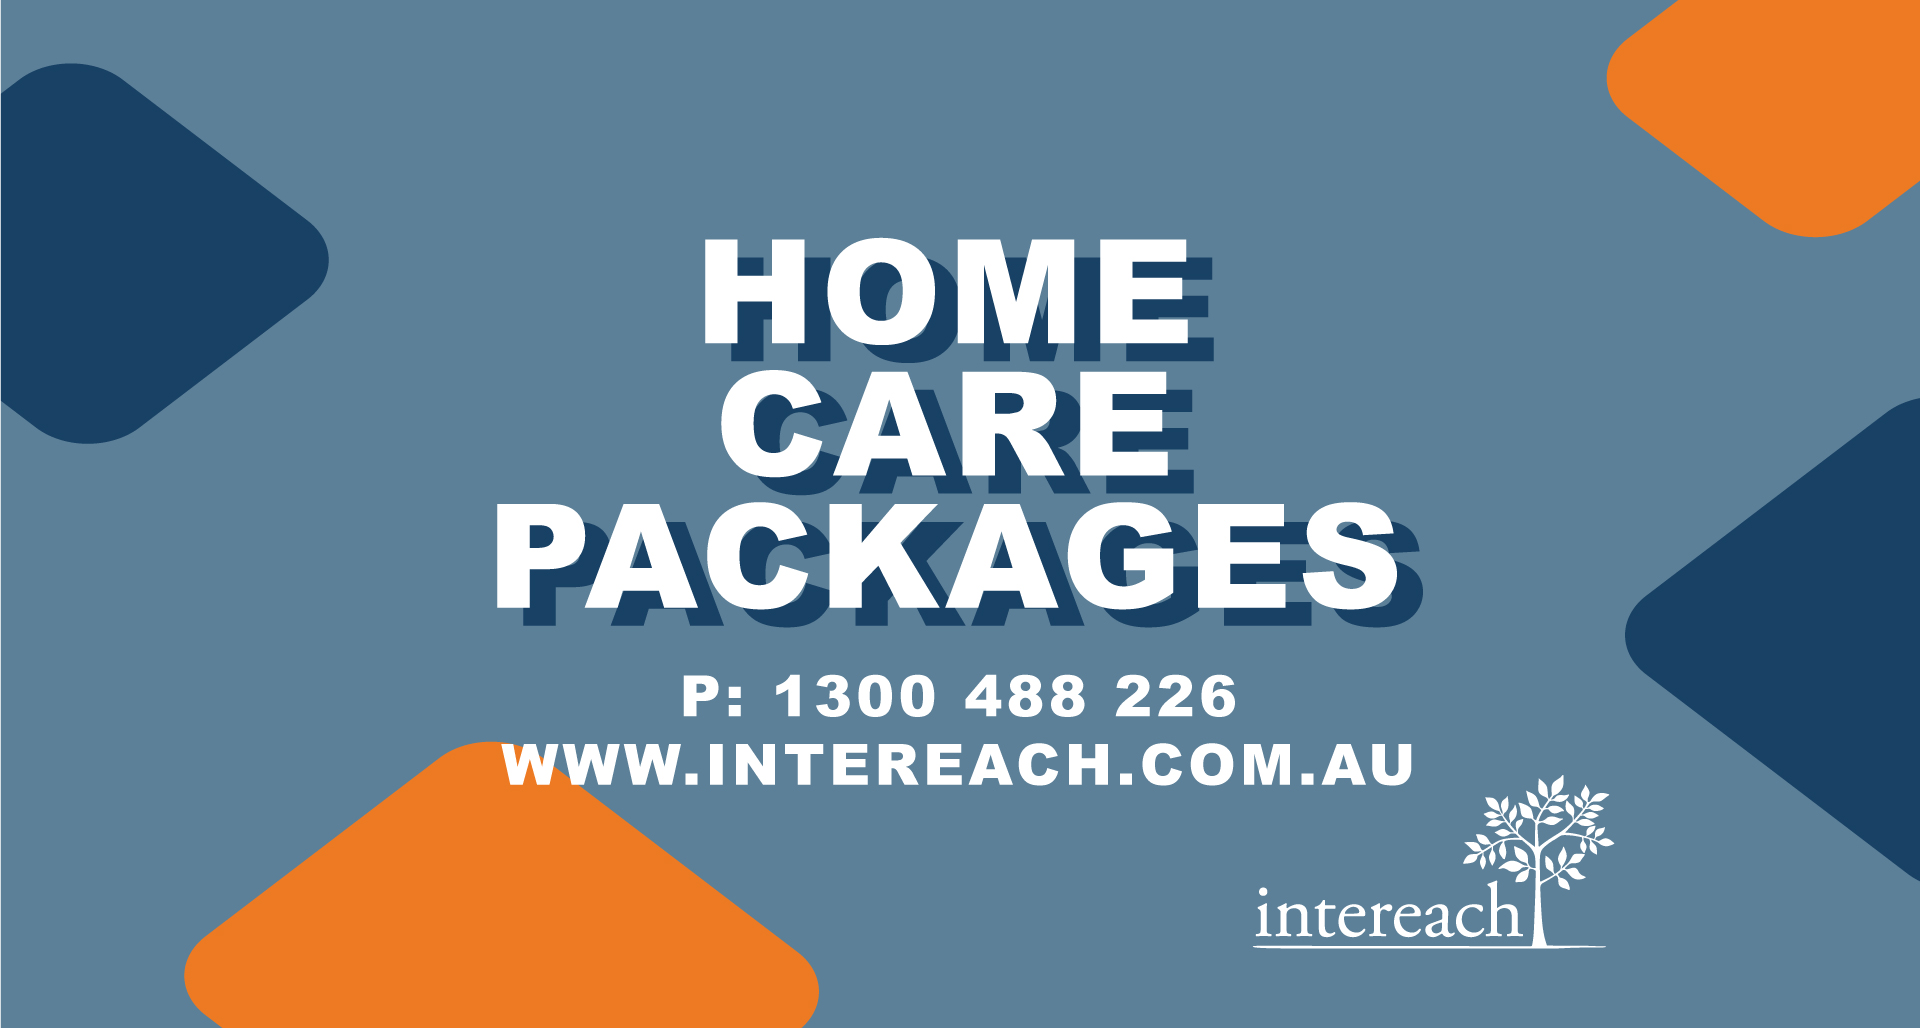 'Home Care Packages' poster